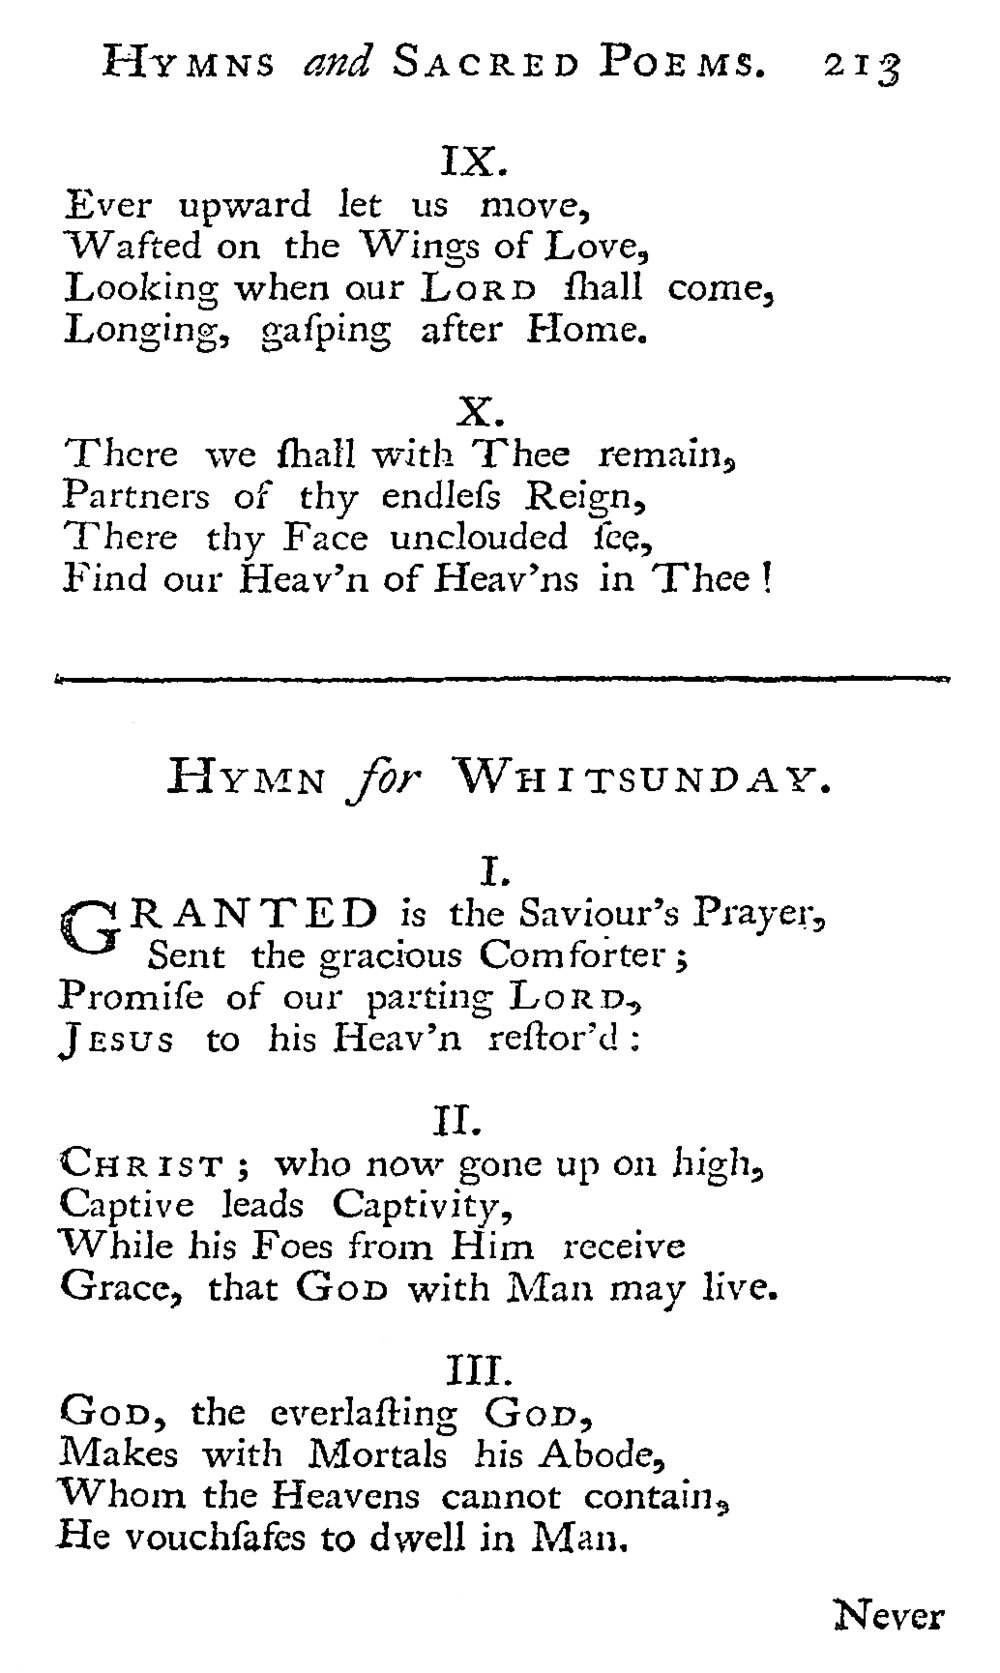 Fig. 1.   Hymns and Sacred Poems  (1739)